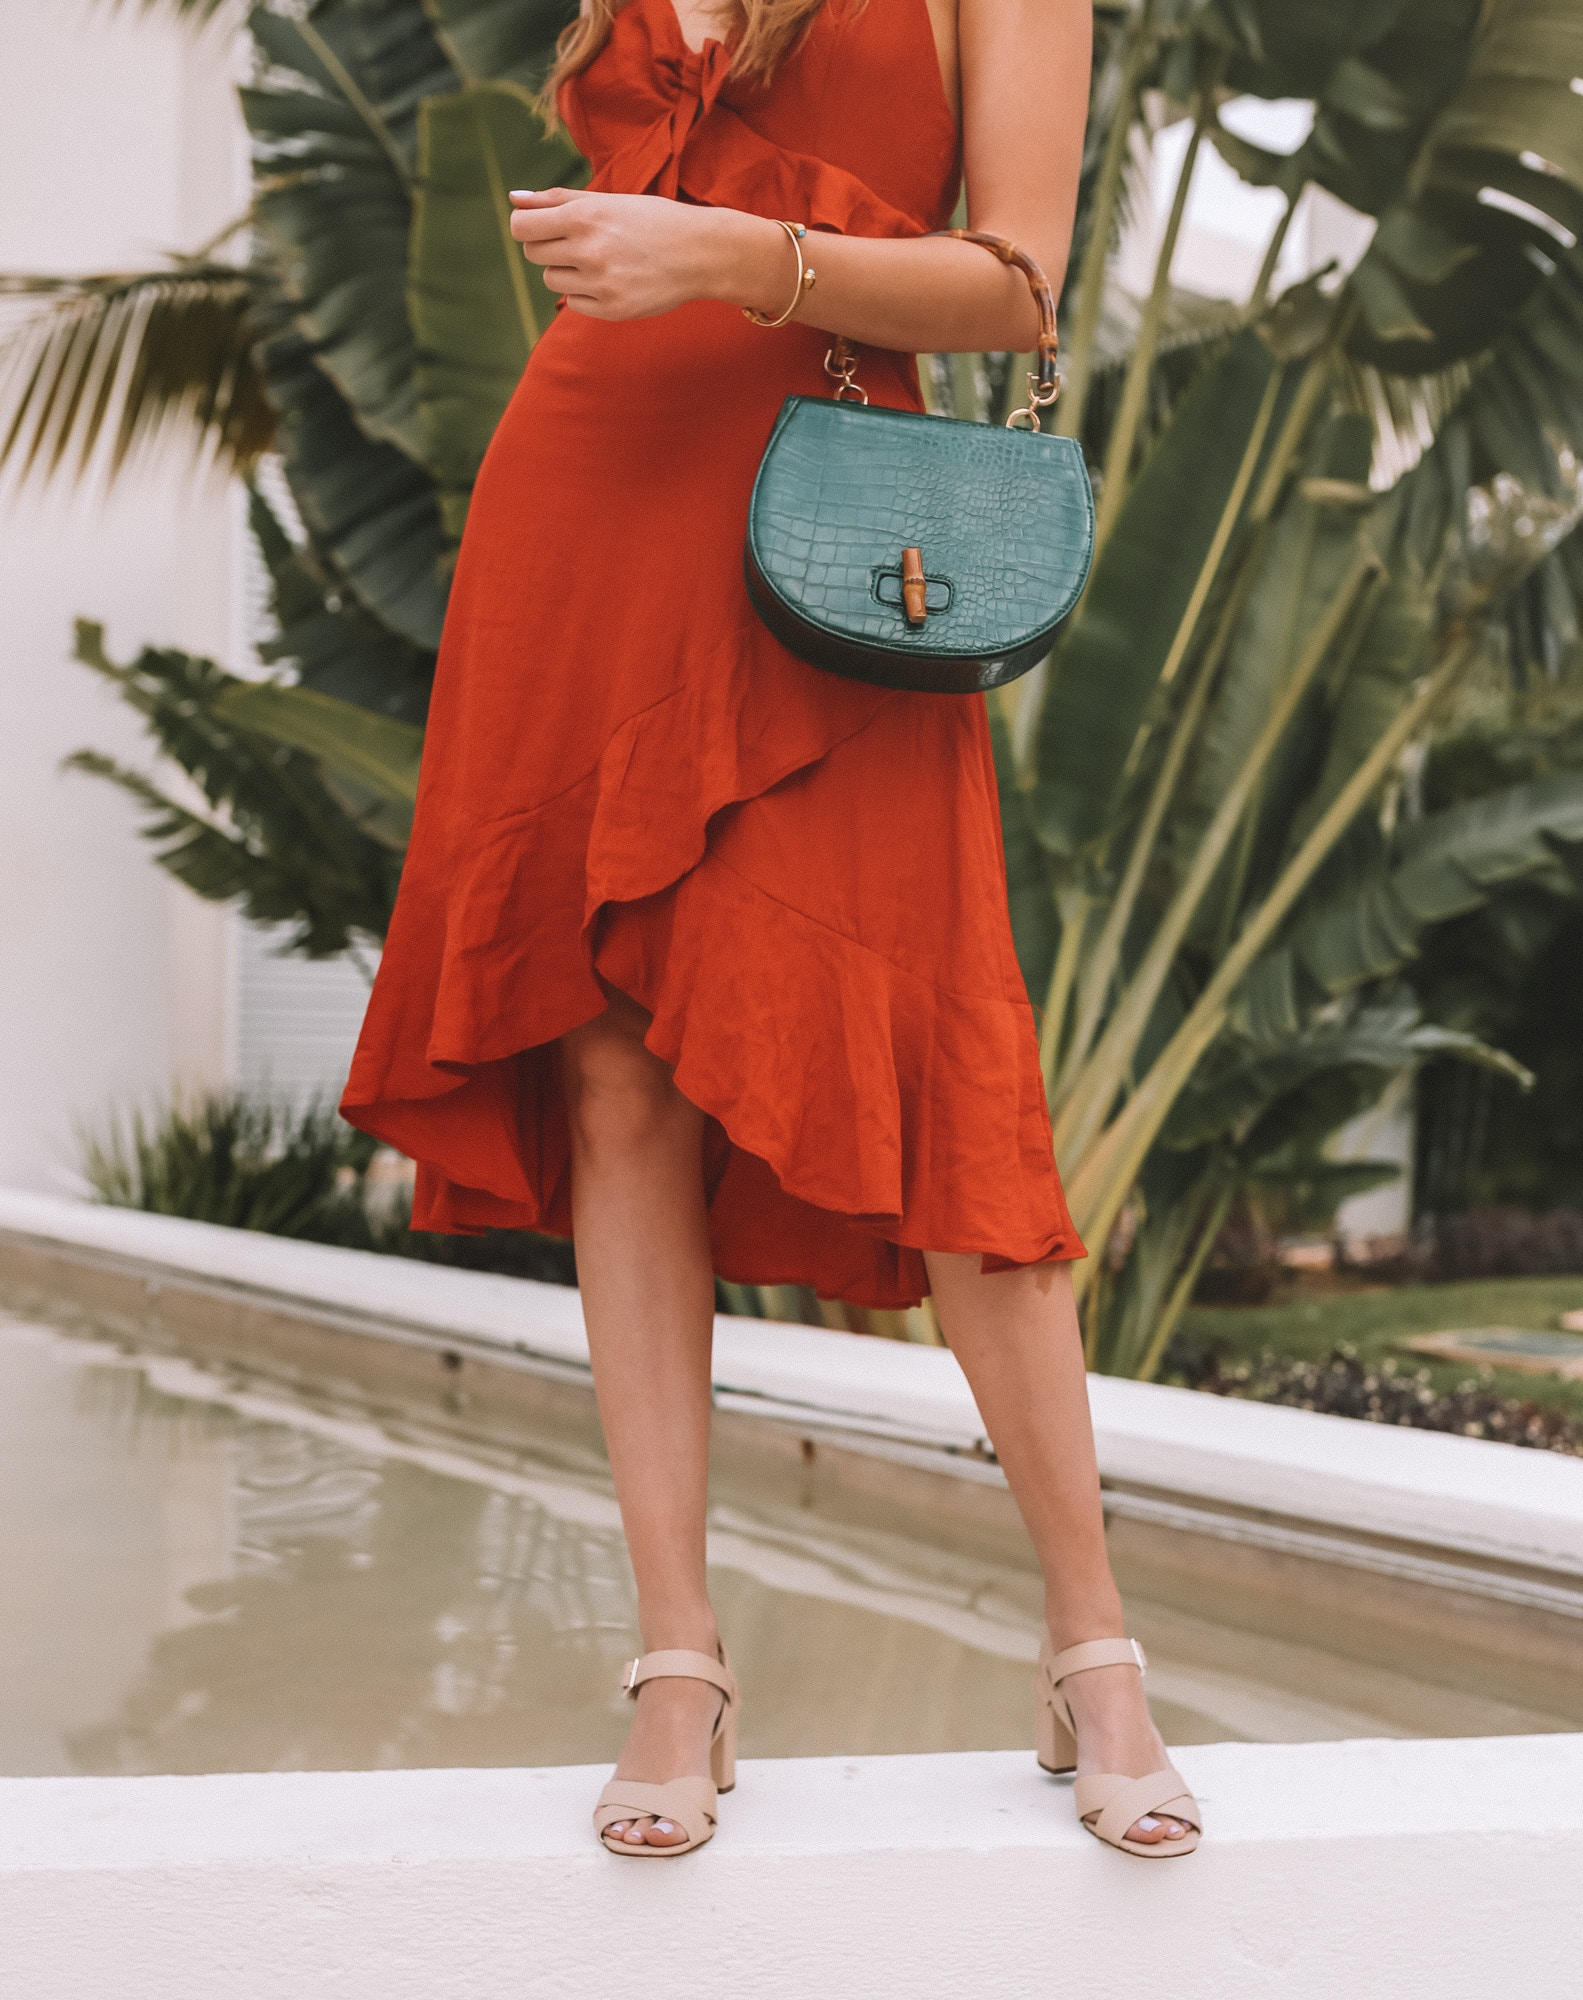 Forever 21 green faux croc bag with a bamboo handle, orange linen dress and cream leather sandals.